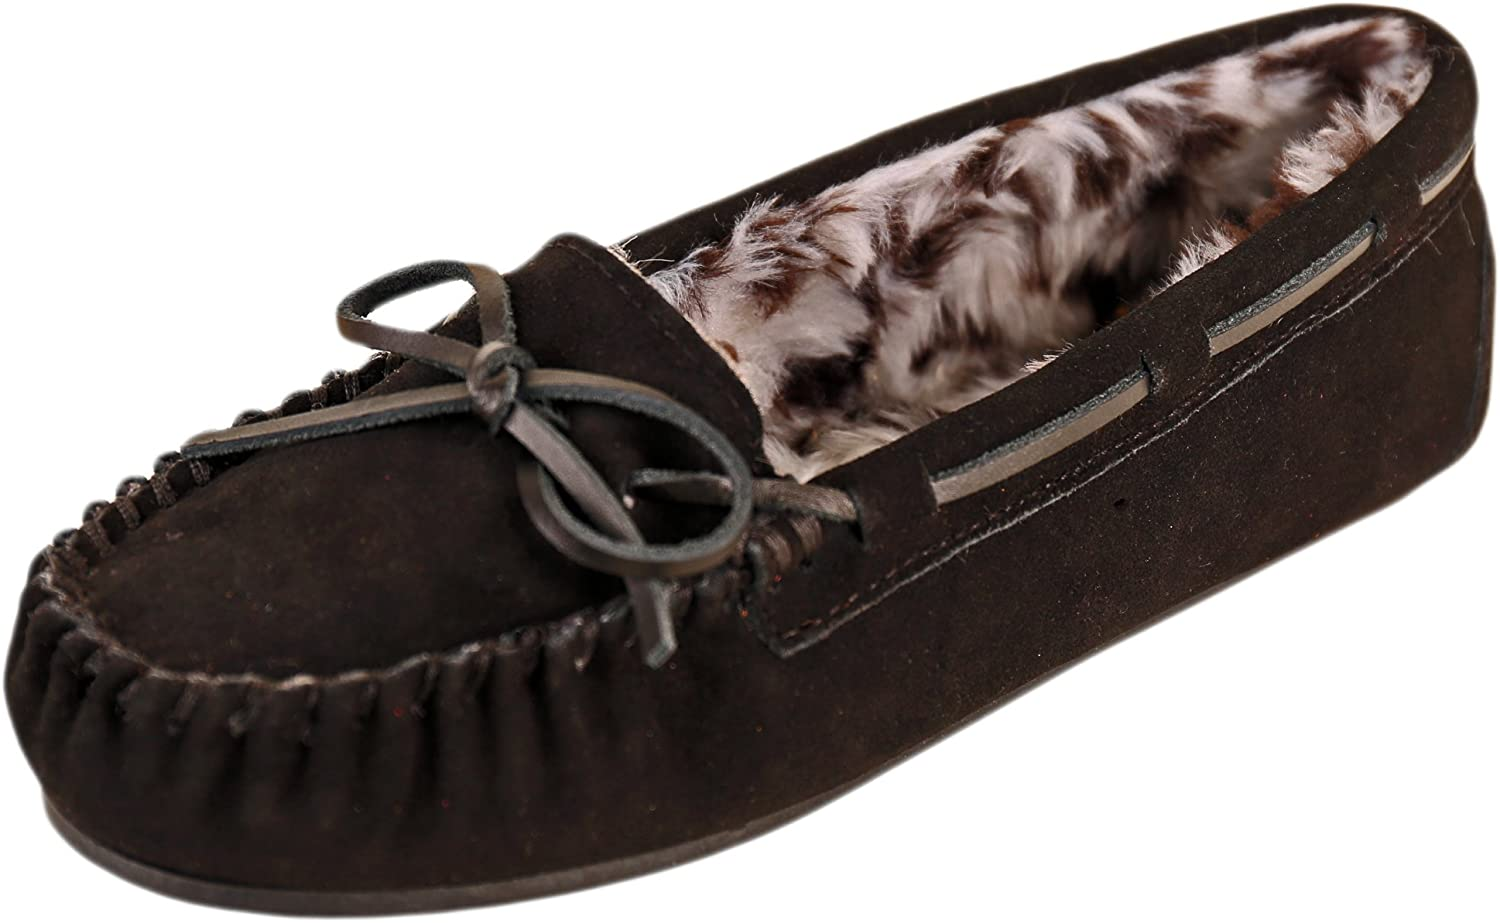 Tamarac by Slippers International Womens Peggy Sue Leather Closed Toe Slip On.